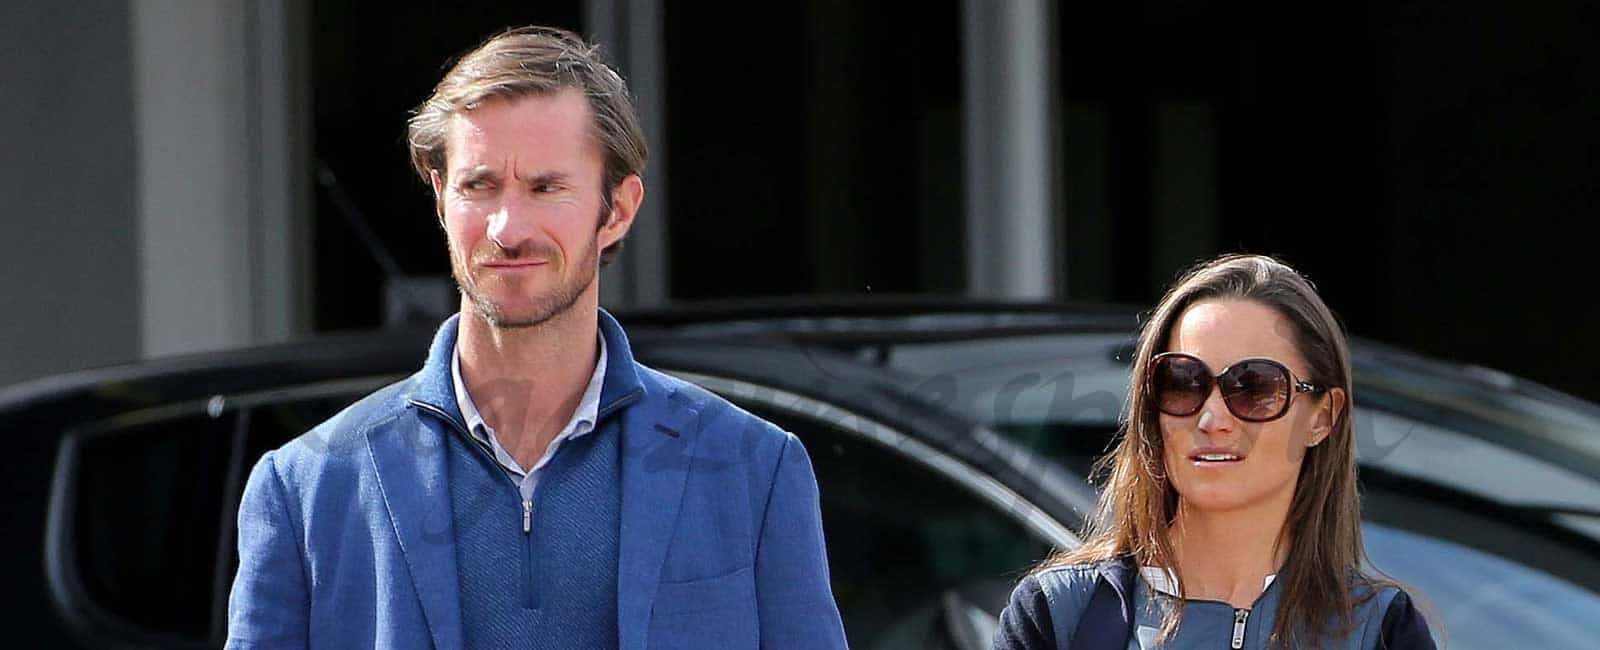 Pippa Middleton y James Mattews hacen oficial su noviazgo